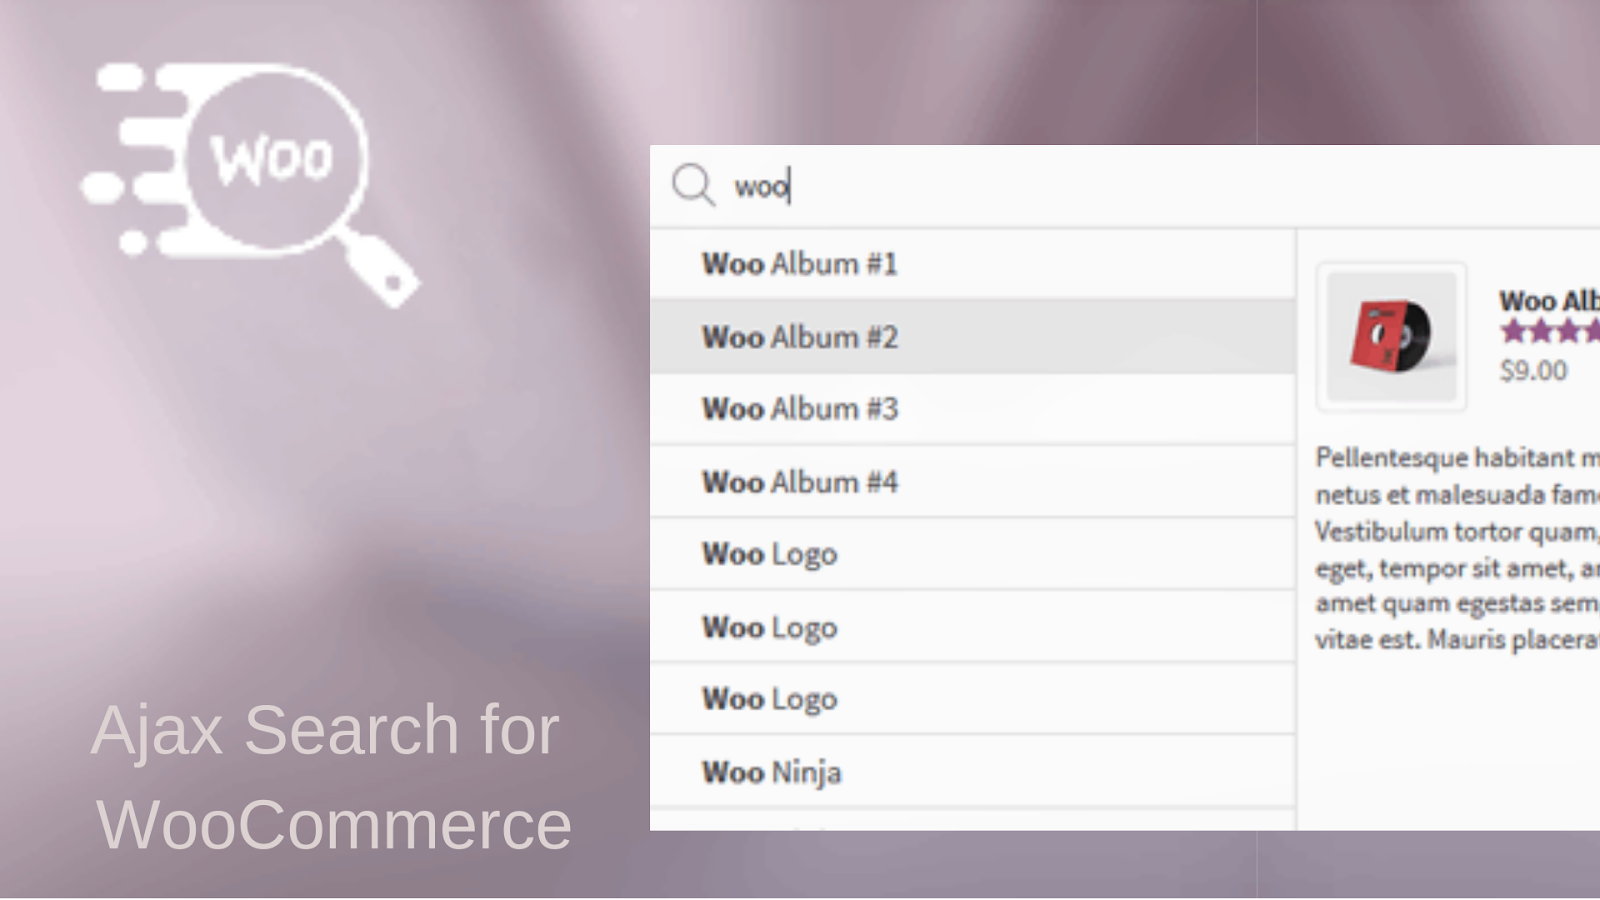 Ajax Search for WooCommerce WordPress search plugins